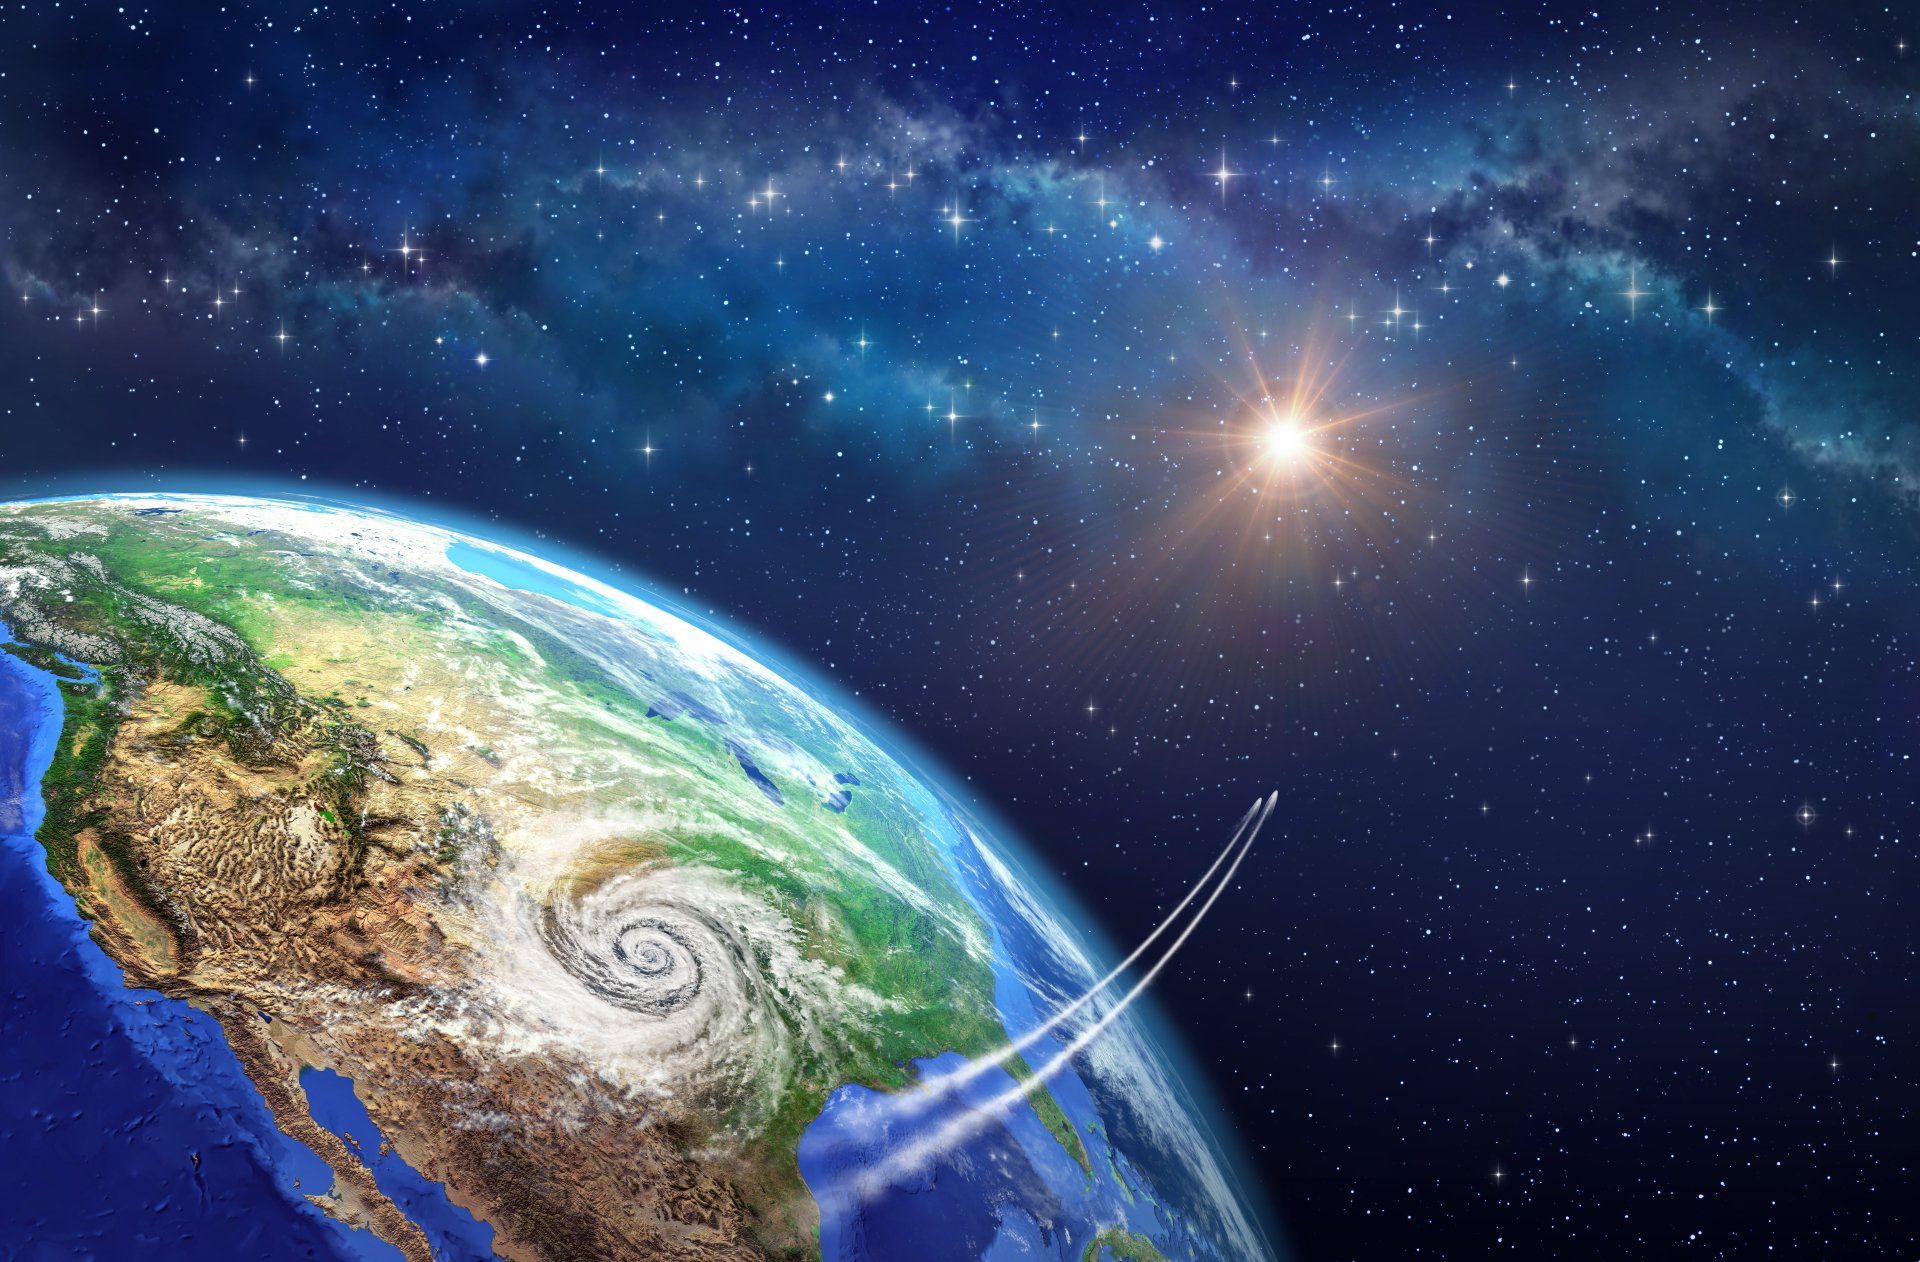 From Space 8k Ultra HD Wallpaper   Background Image ...